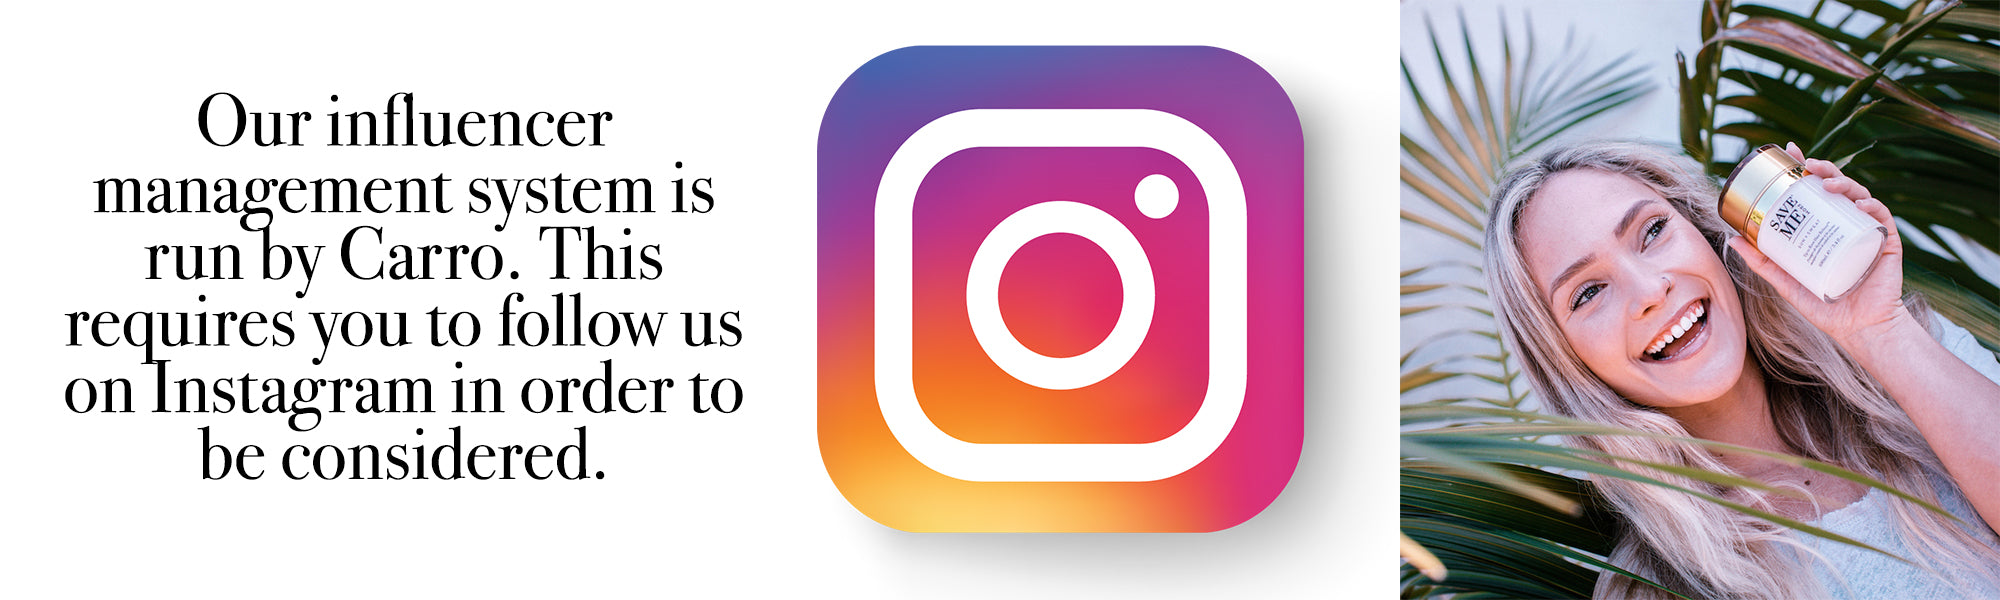 Our influencer management system is run by Carro. This requires you to follow us on Instagram in order to be considered.